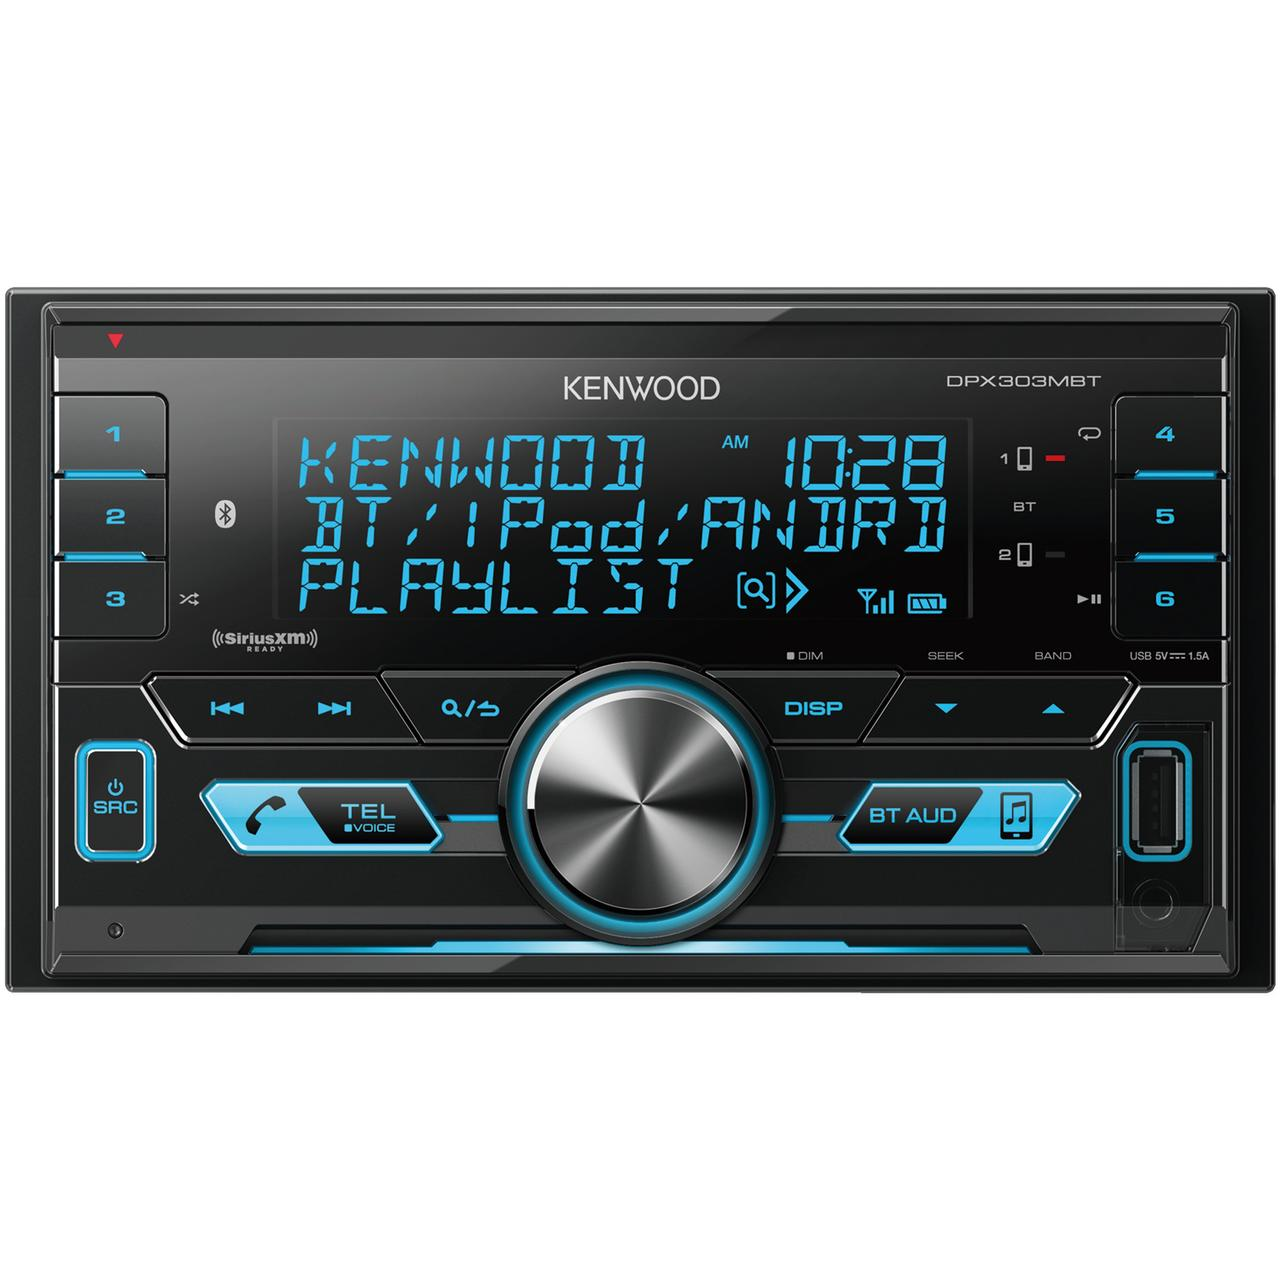 KENWOOD DPX303MBT Double-DIN In-Dash Digital Media Receiver with Bluetooth & SiriusXM Ready by Kenwood